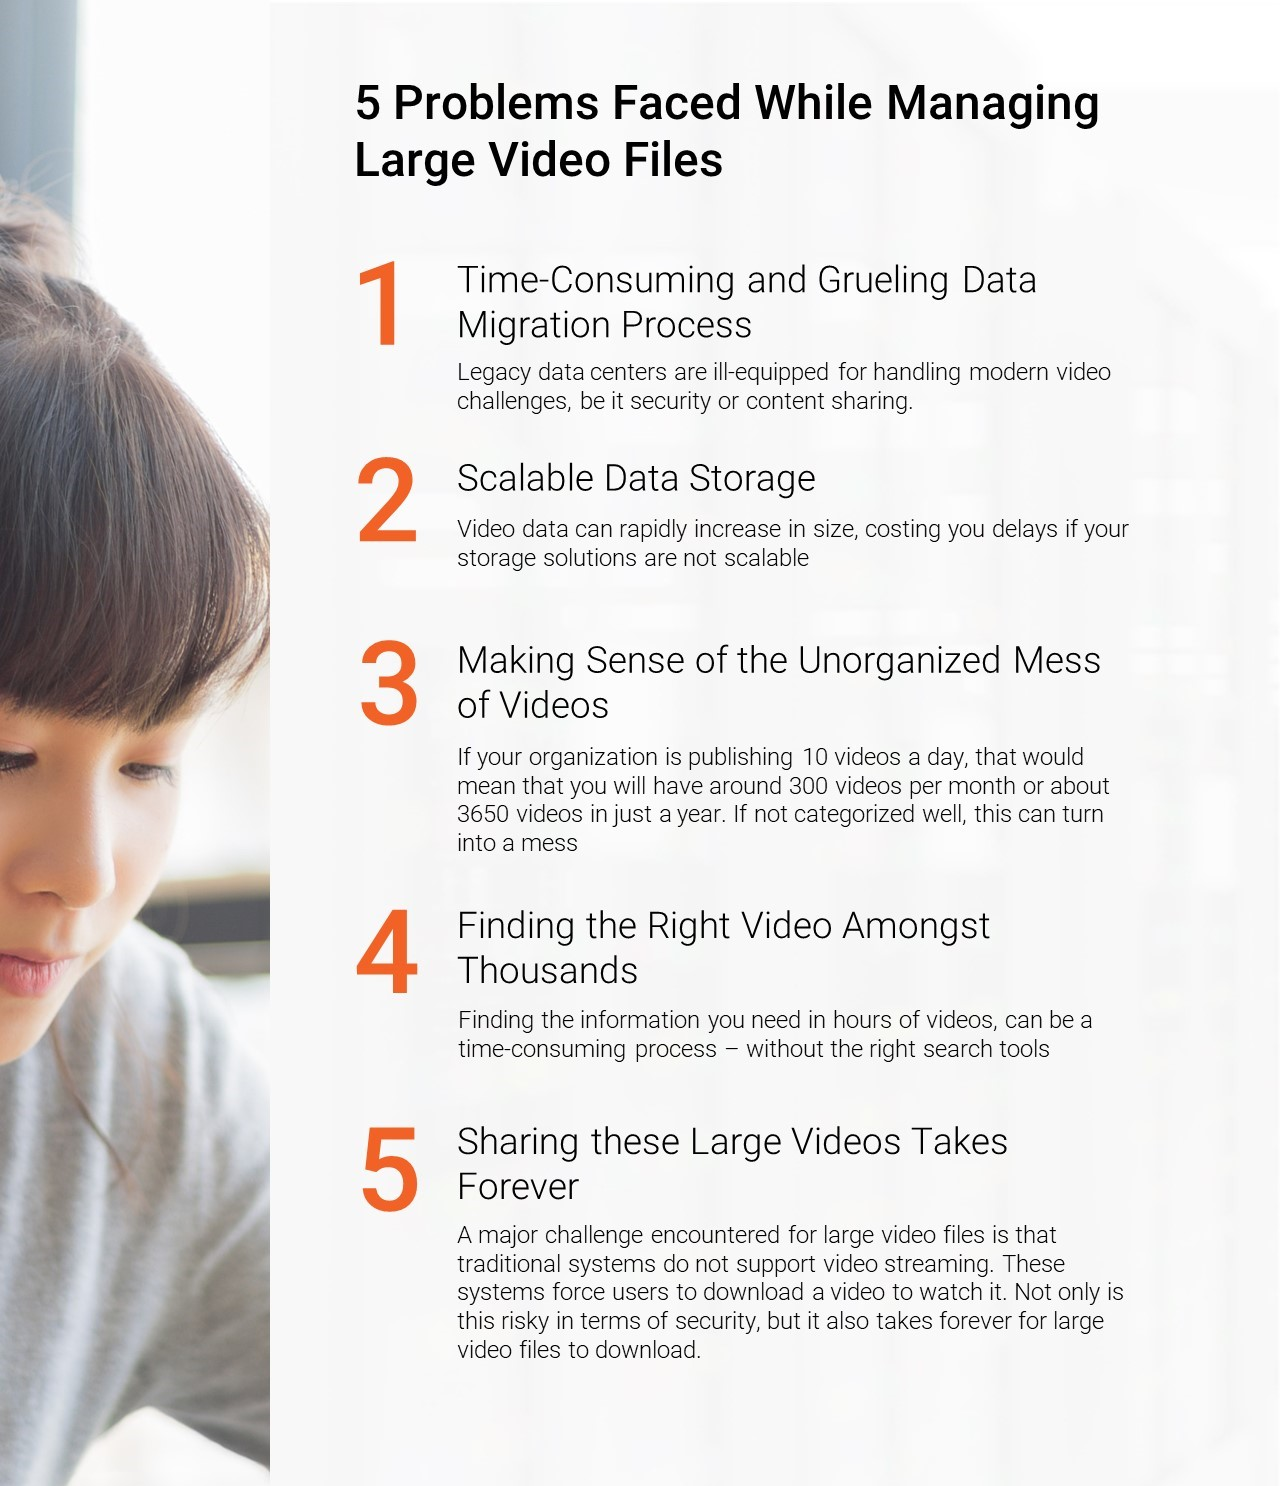 Hosting Large Video Files Infographic